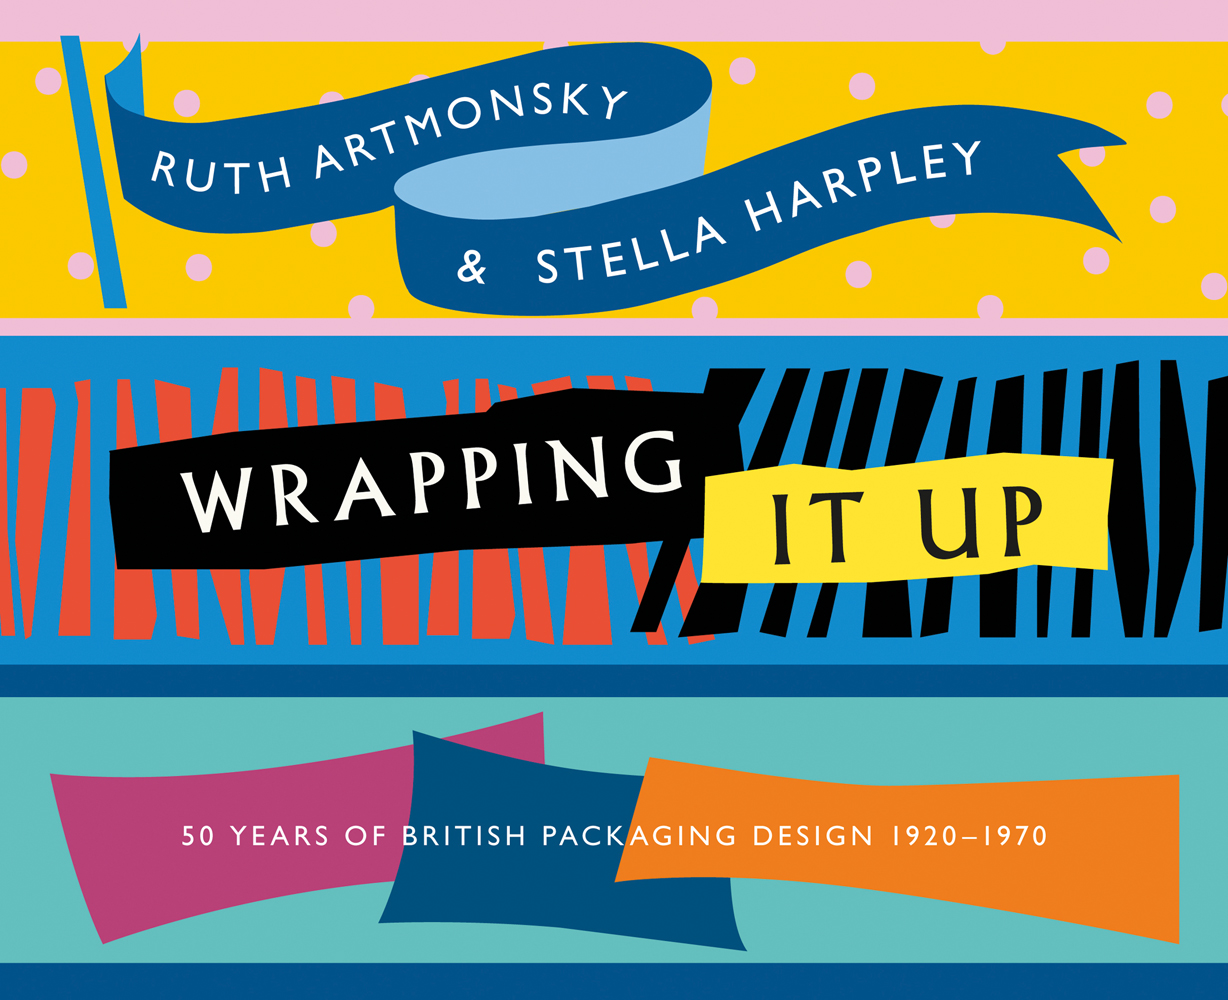 Wrapping It Up: 50 Years of British Packaging Design 1920-1970